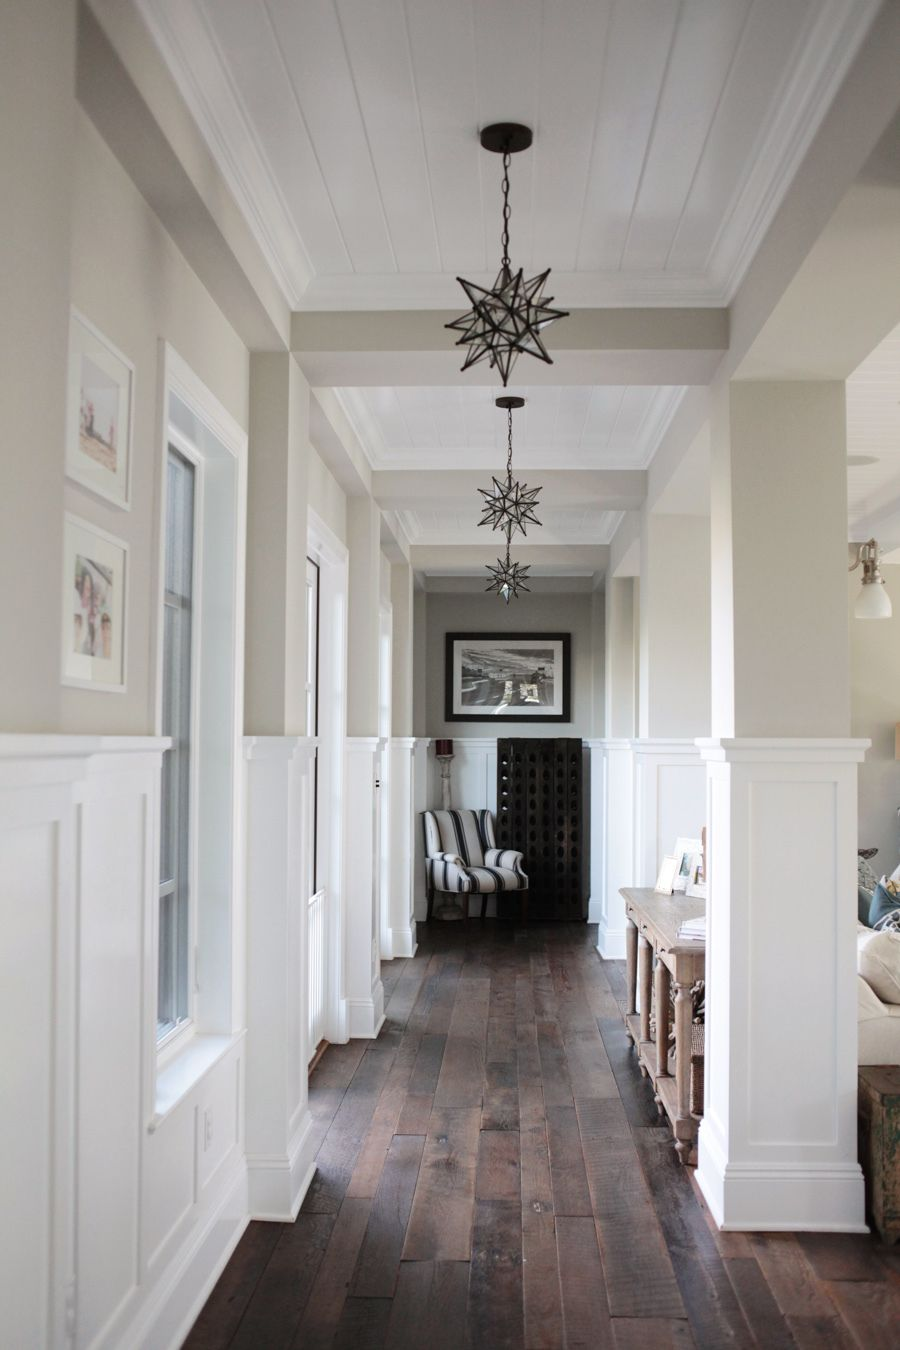 Home interior paint colors newport beach home tour  neutral hallway flooring and wall colors